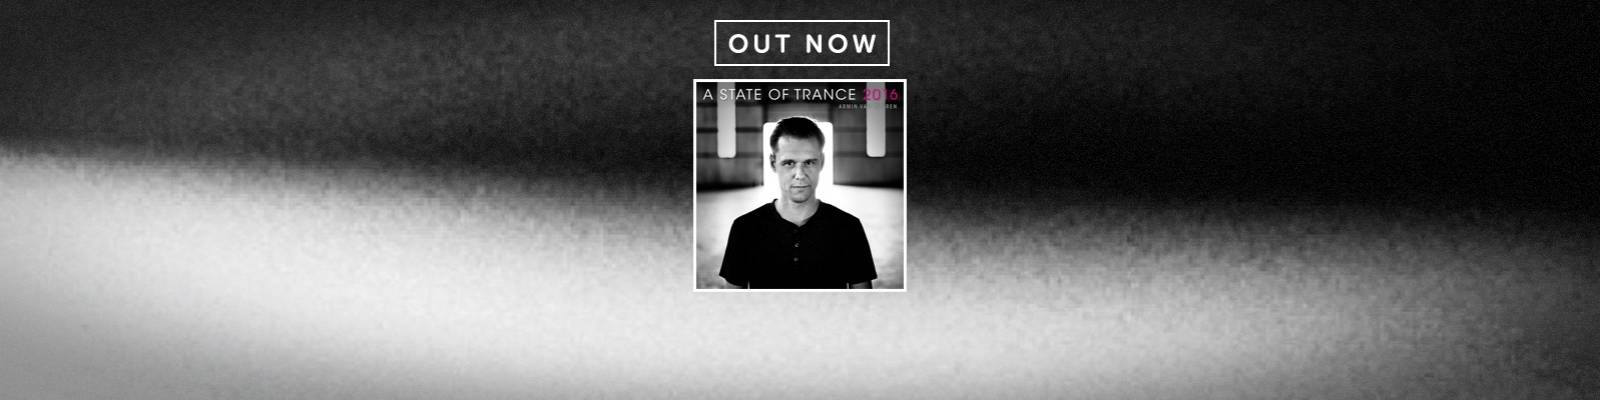 OUT NOW: A State Of Trance 2016